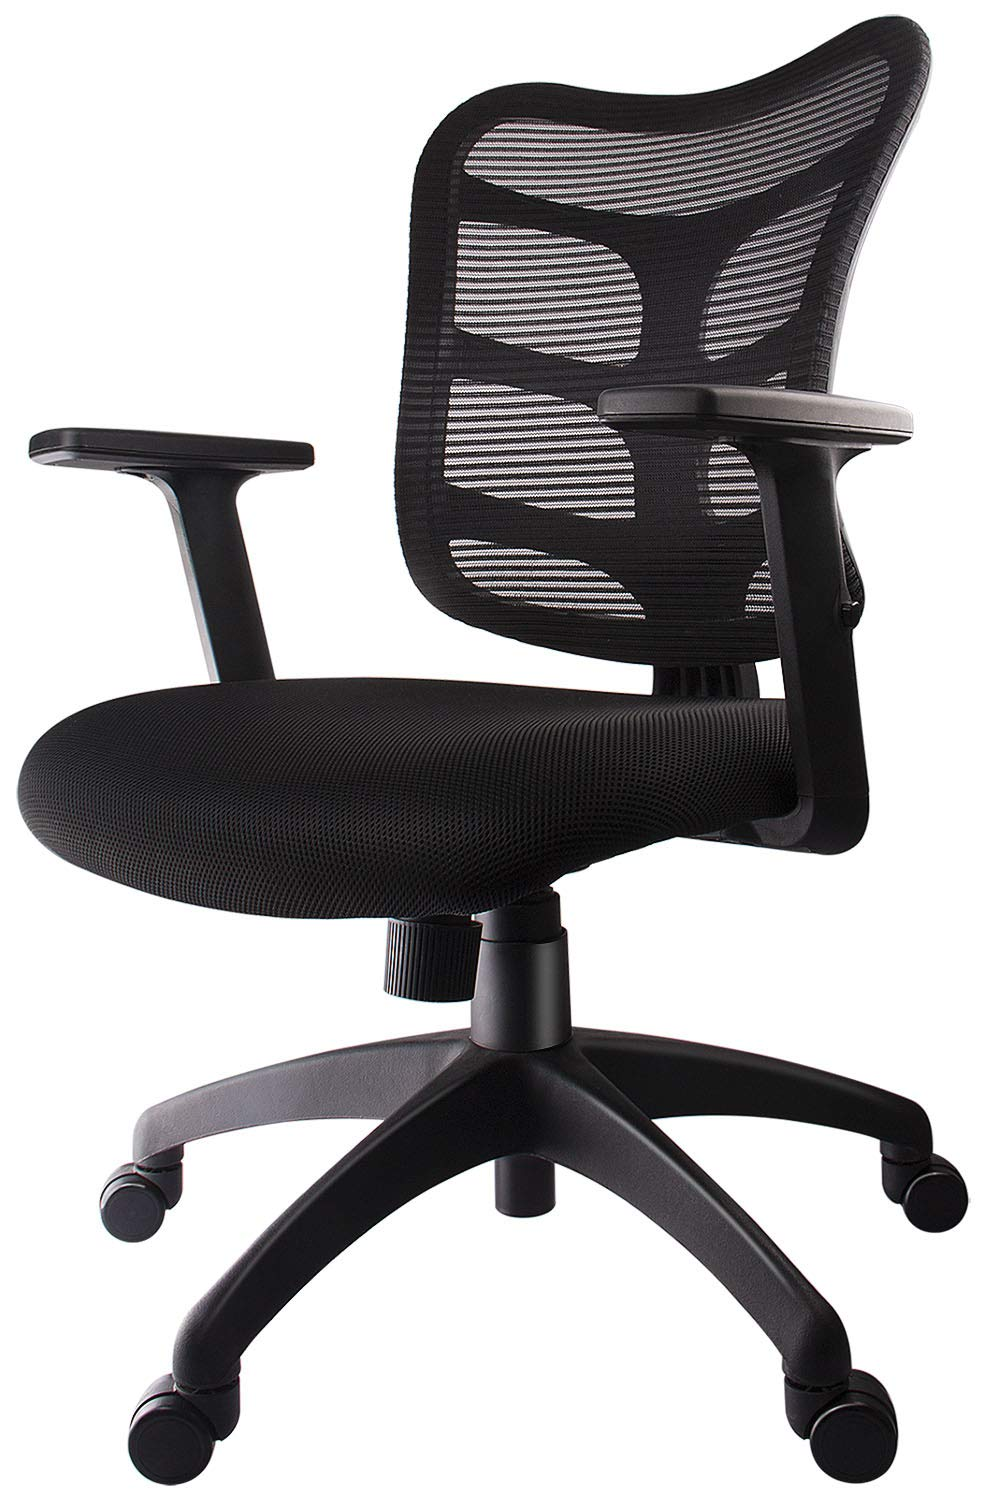 Smugdesk 0581F Ergonomic Office Mesh Computer Desk Swivel Task Chair with Adjustable Armrests, Black by Smugdesk